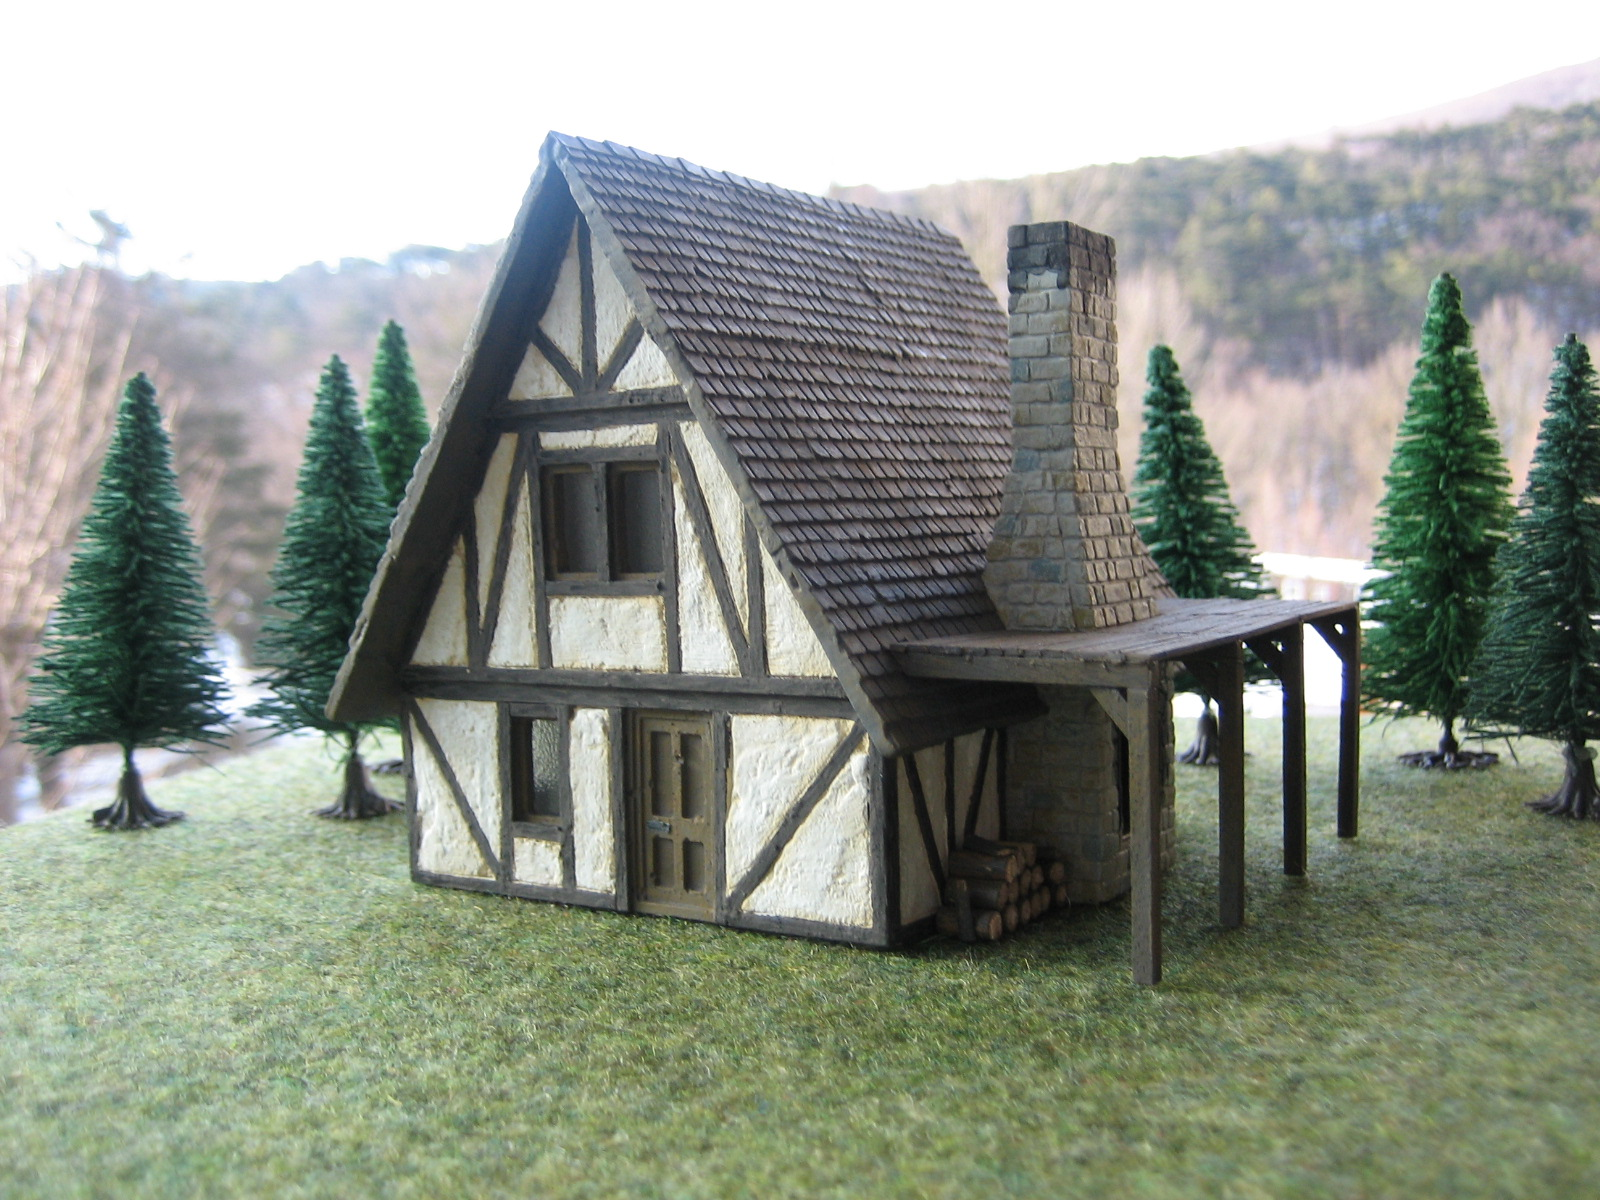 Plan sheets for Medieval house plans